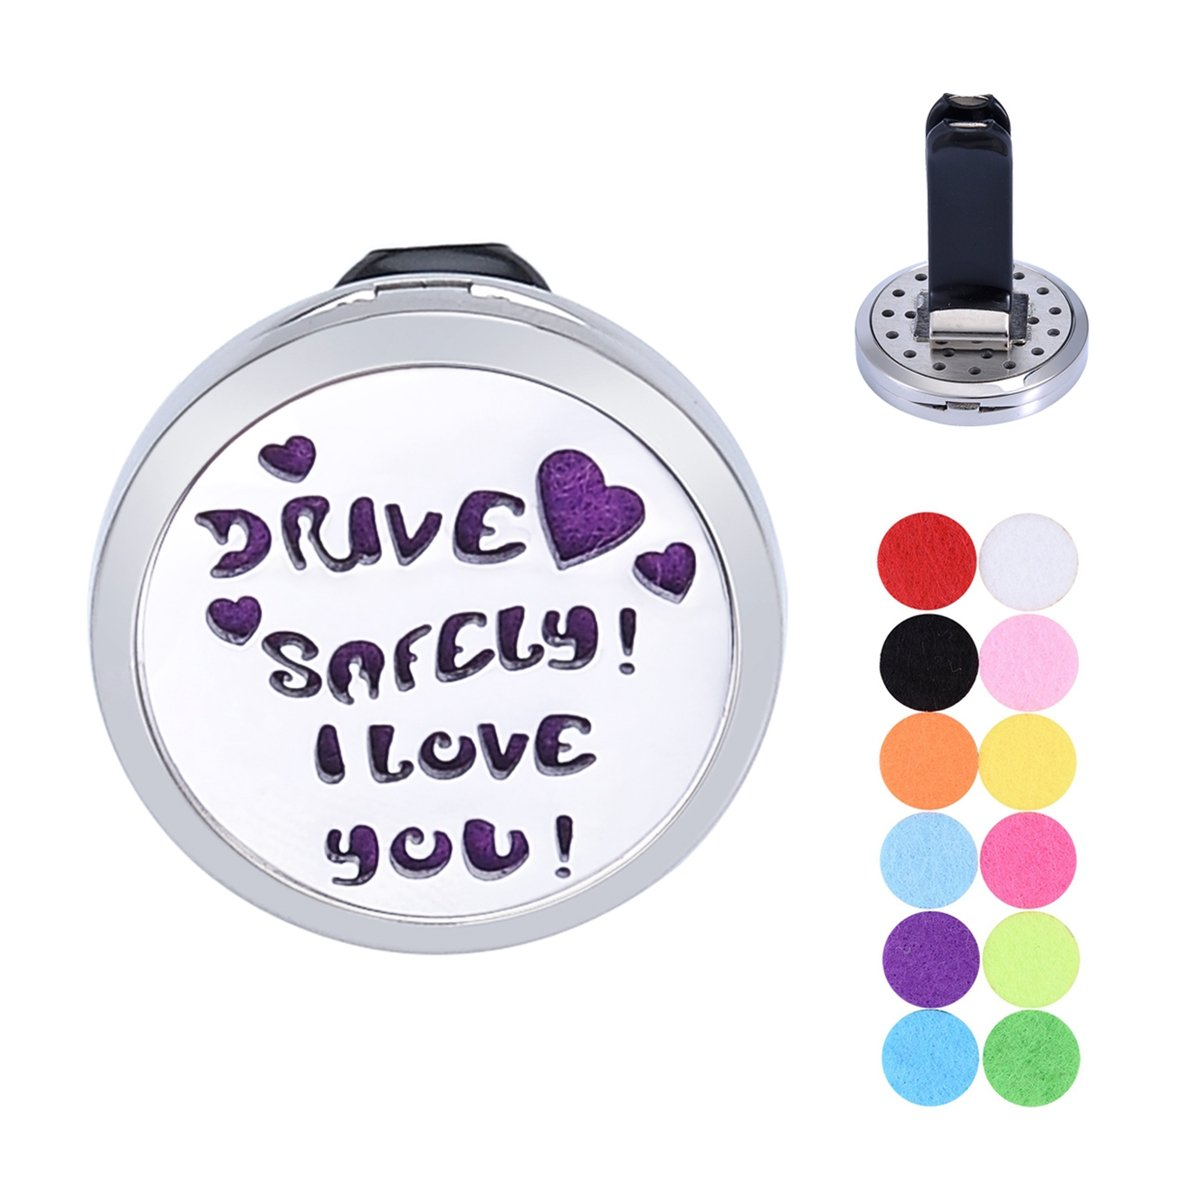 ''DRIVE SAFELY I LOVE YOU'' Car Air Freshener Aromatherapy Essential Oil Diffuser Vent Clip Stainless Steel Locket with 12 Felt Pads